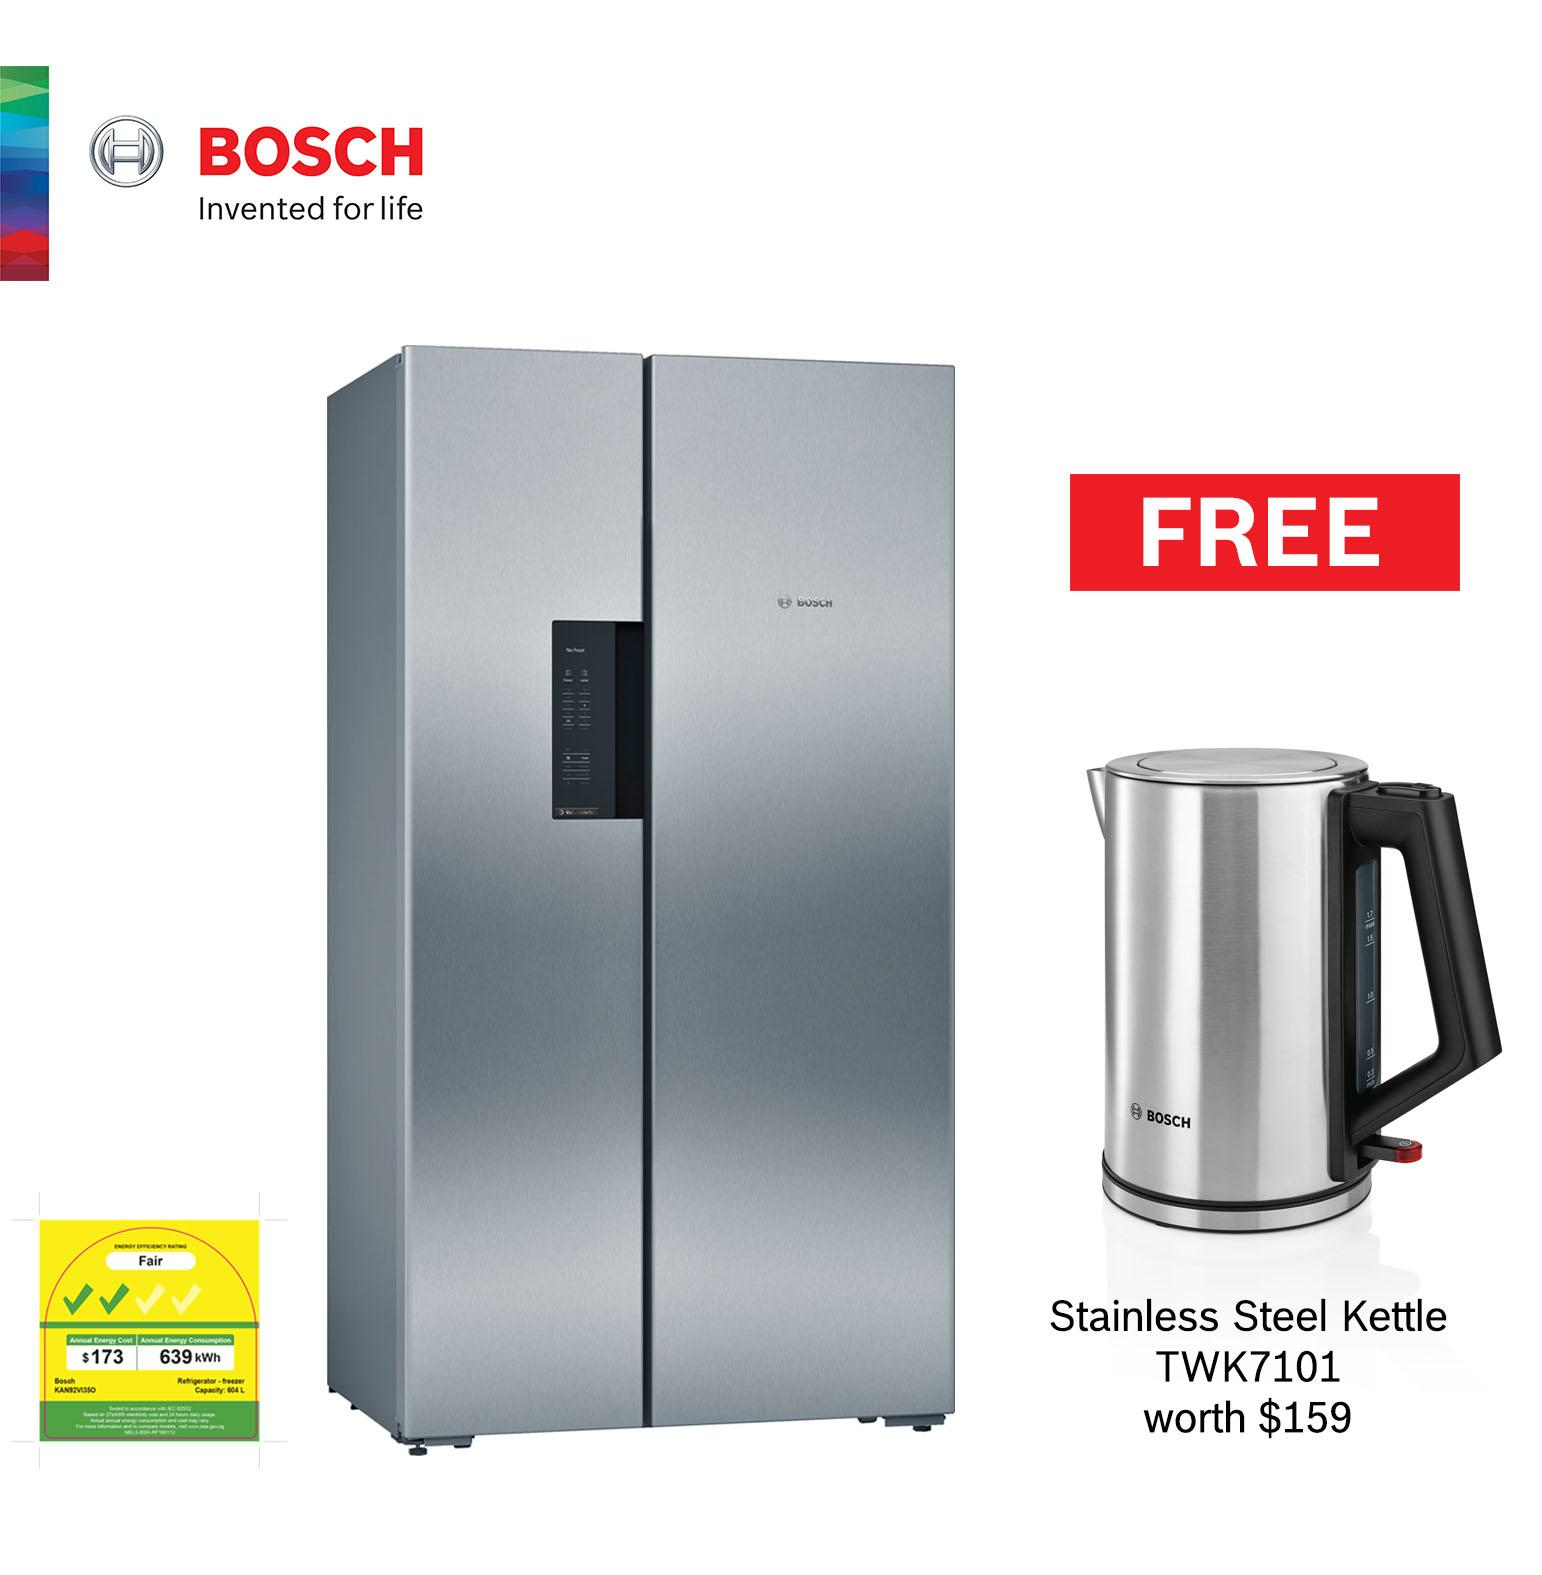 Kuche Bar Fridge Review Cny Special Bosch Side By Side Fridge Freezer With Stainless Steel Fingerprint Resistant Door Kan92vi35o Capacity 661l